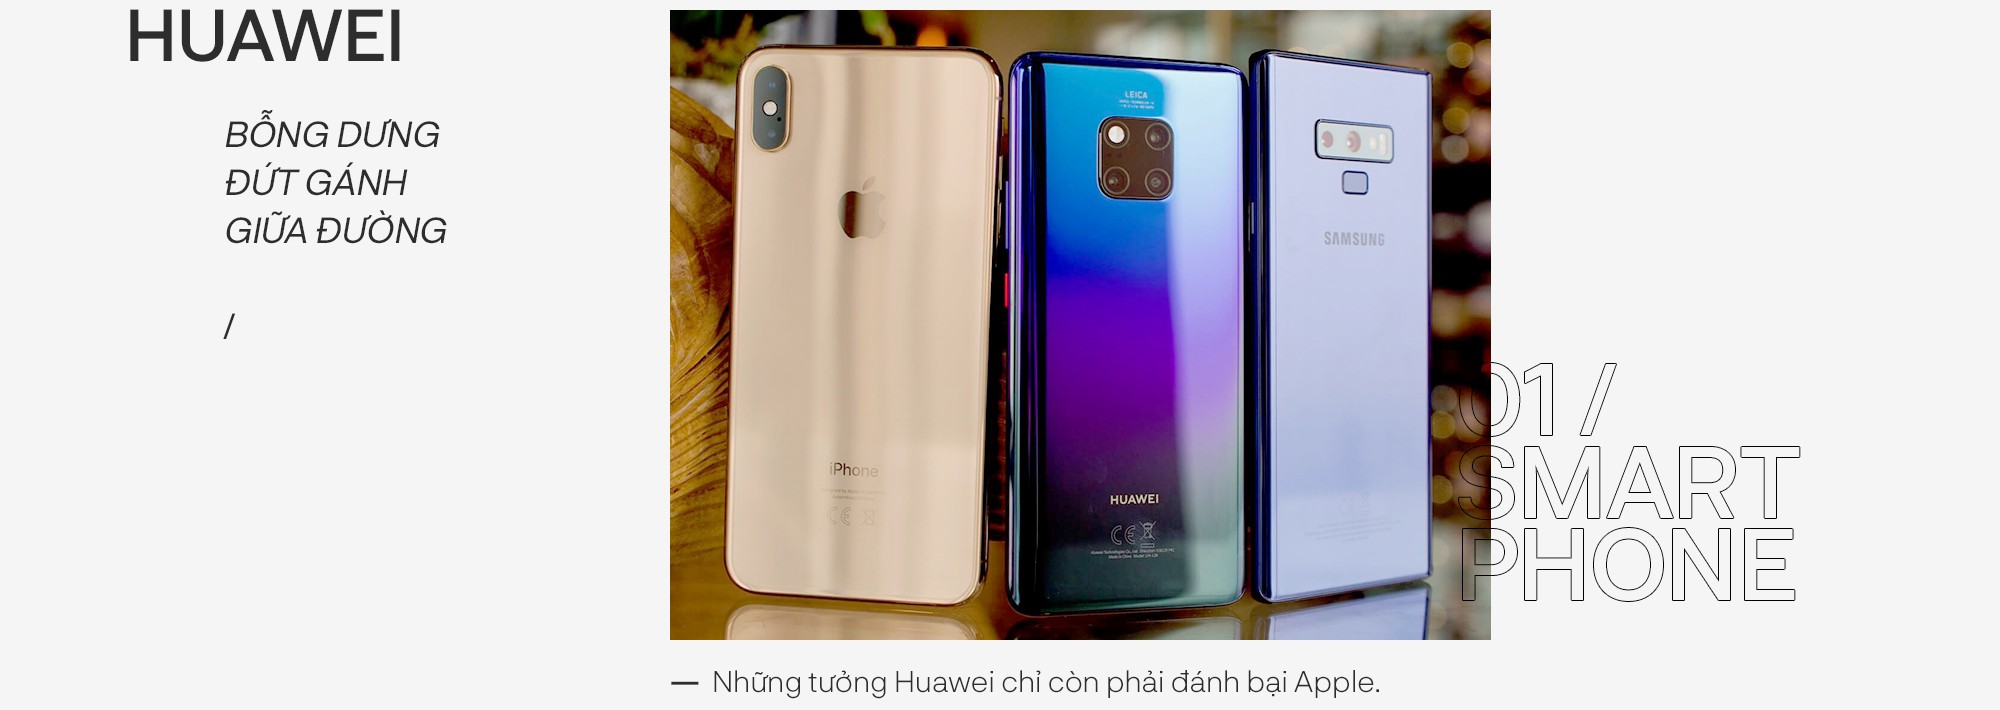 The first half of 2019, the smartphone world molested with the sudden things - Photo 1.